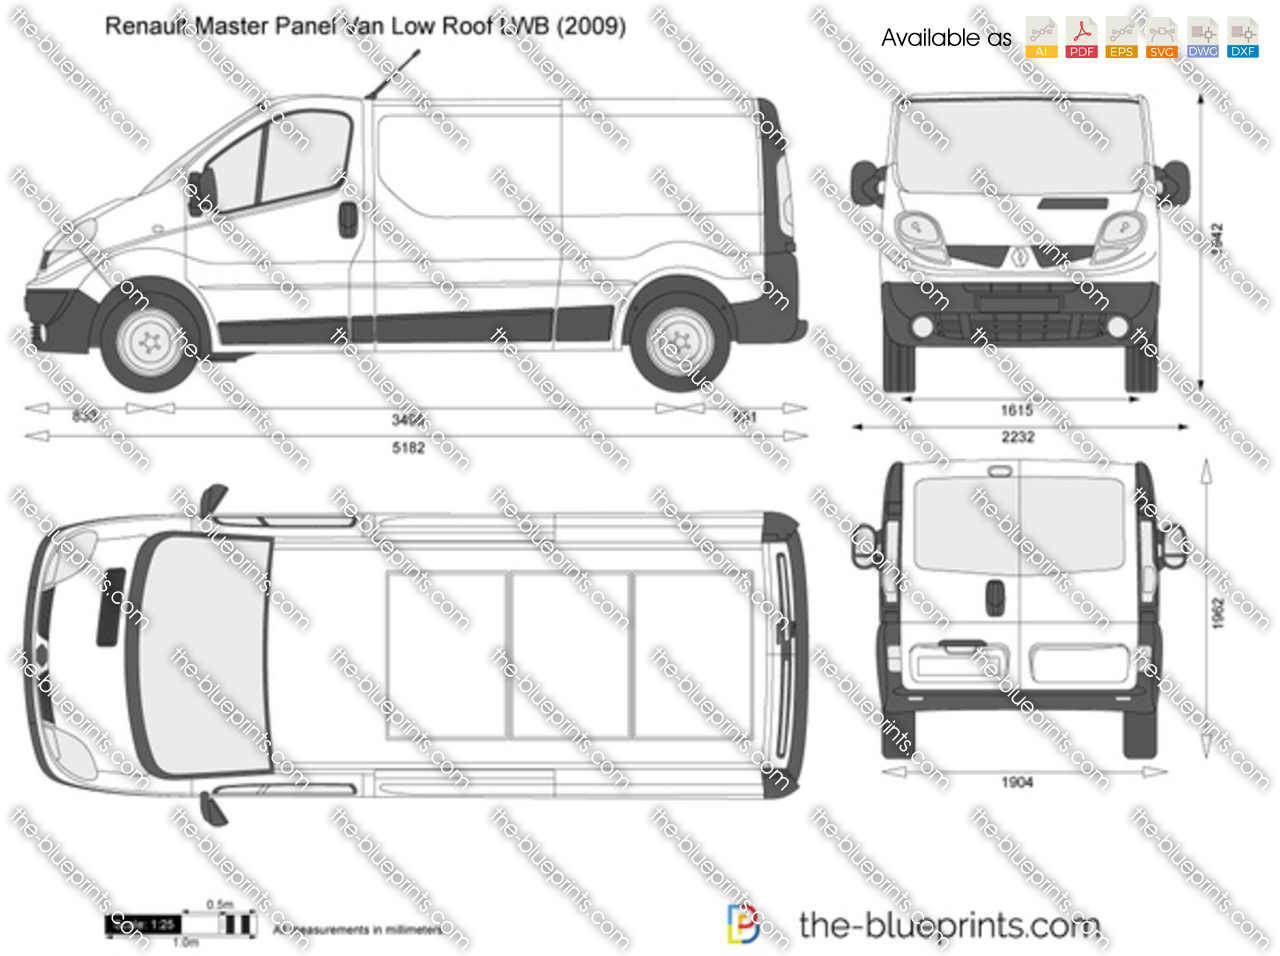 the vector drawing renault trafic panel van low roof lwb. Black Bedroom Furniture Sets. Home Design Ideas